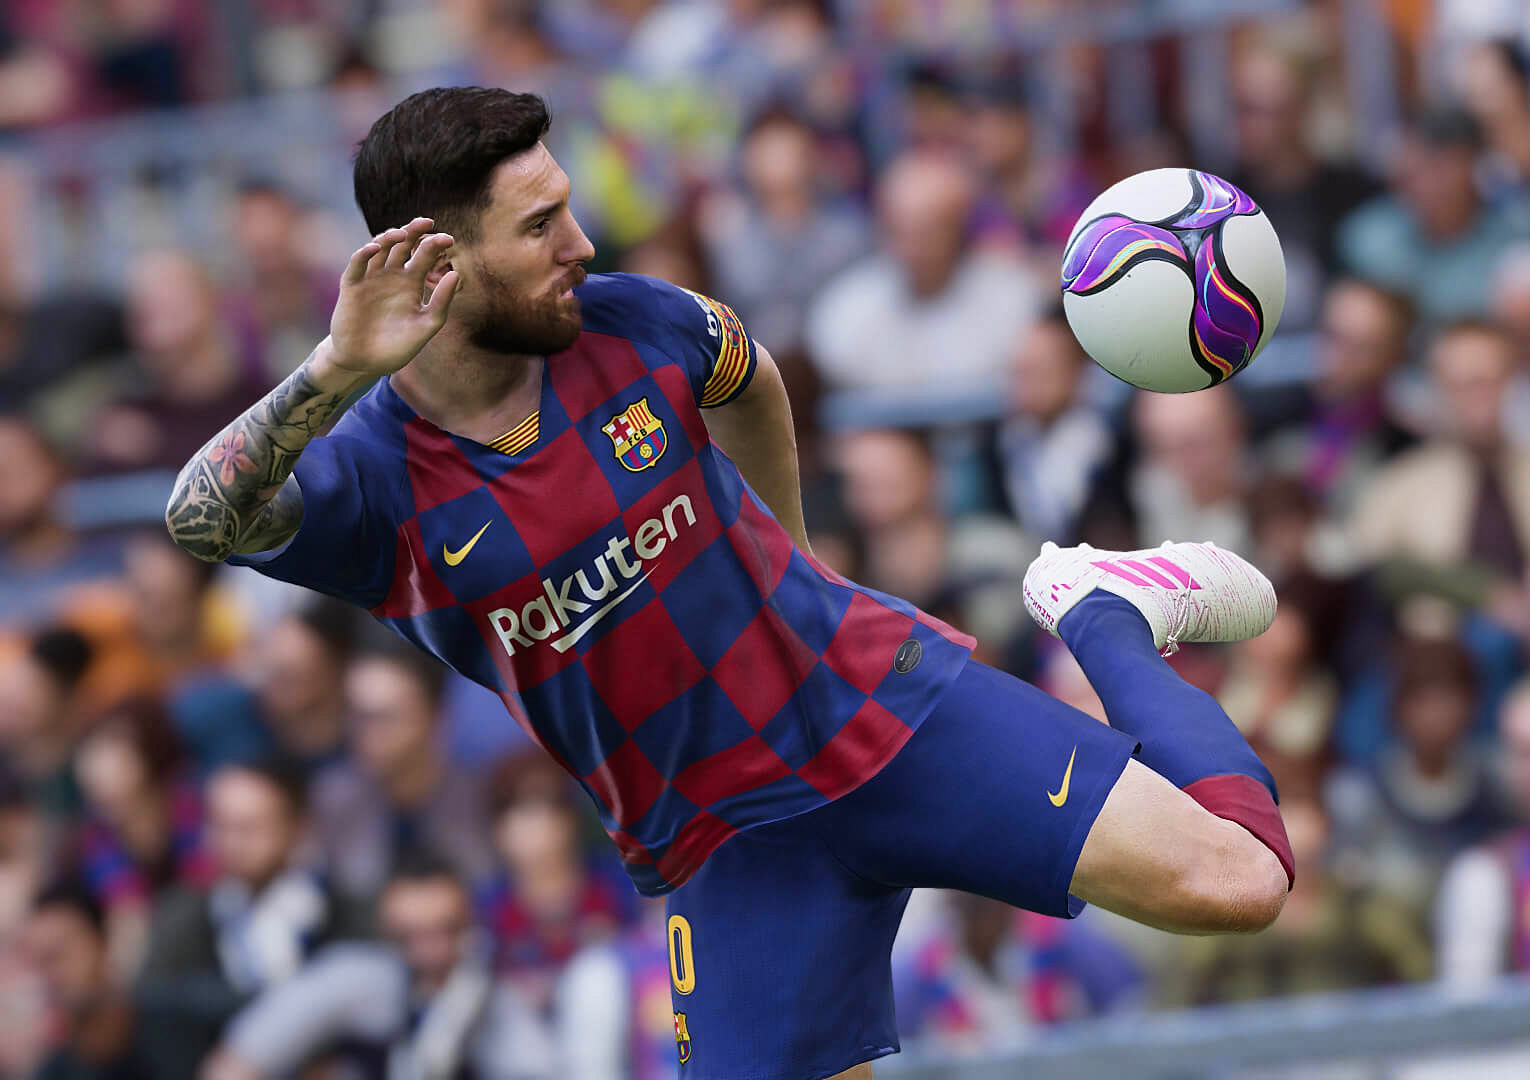 The inside story of PES 2020, the game taking the series back to its